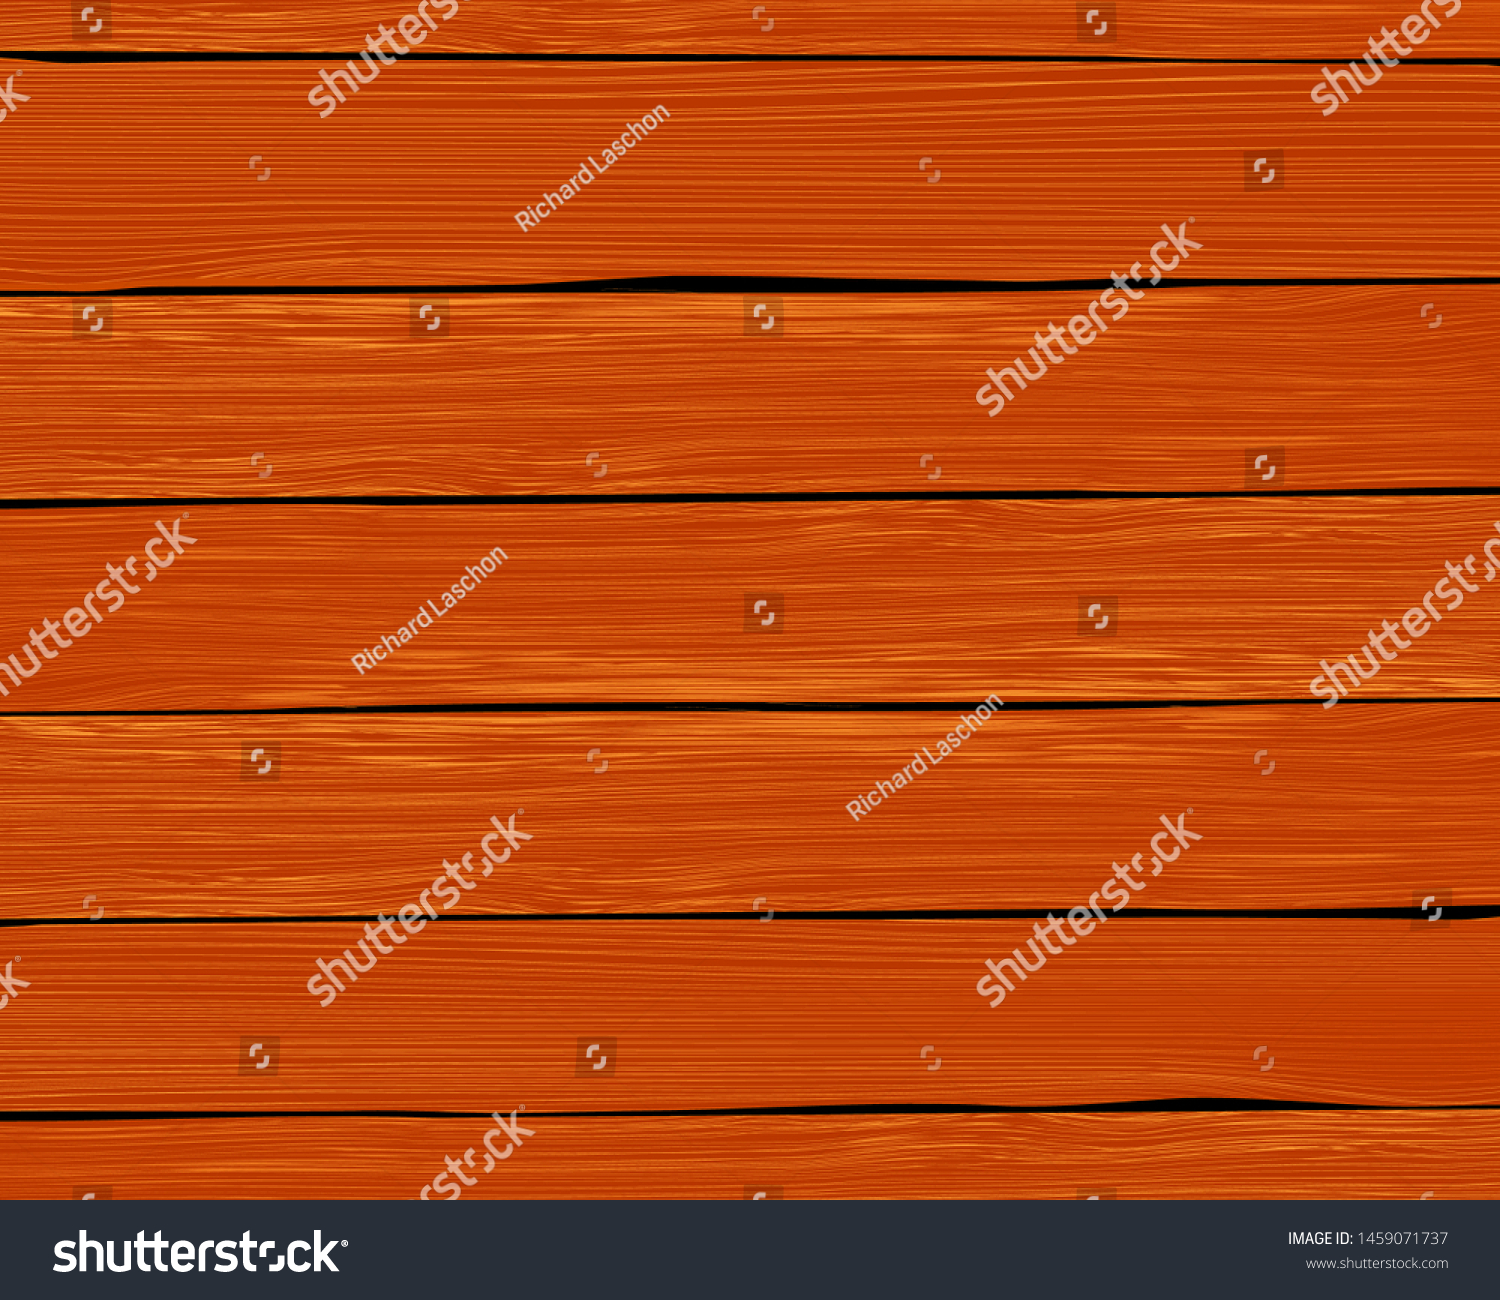 stock-vector-red-wood-plank-vector-backg